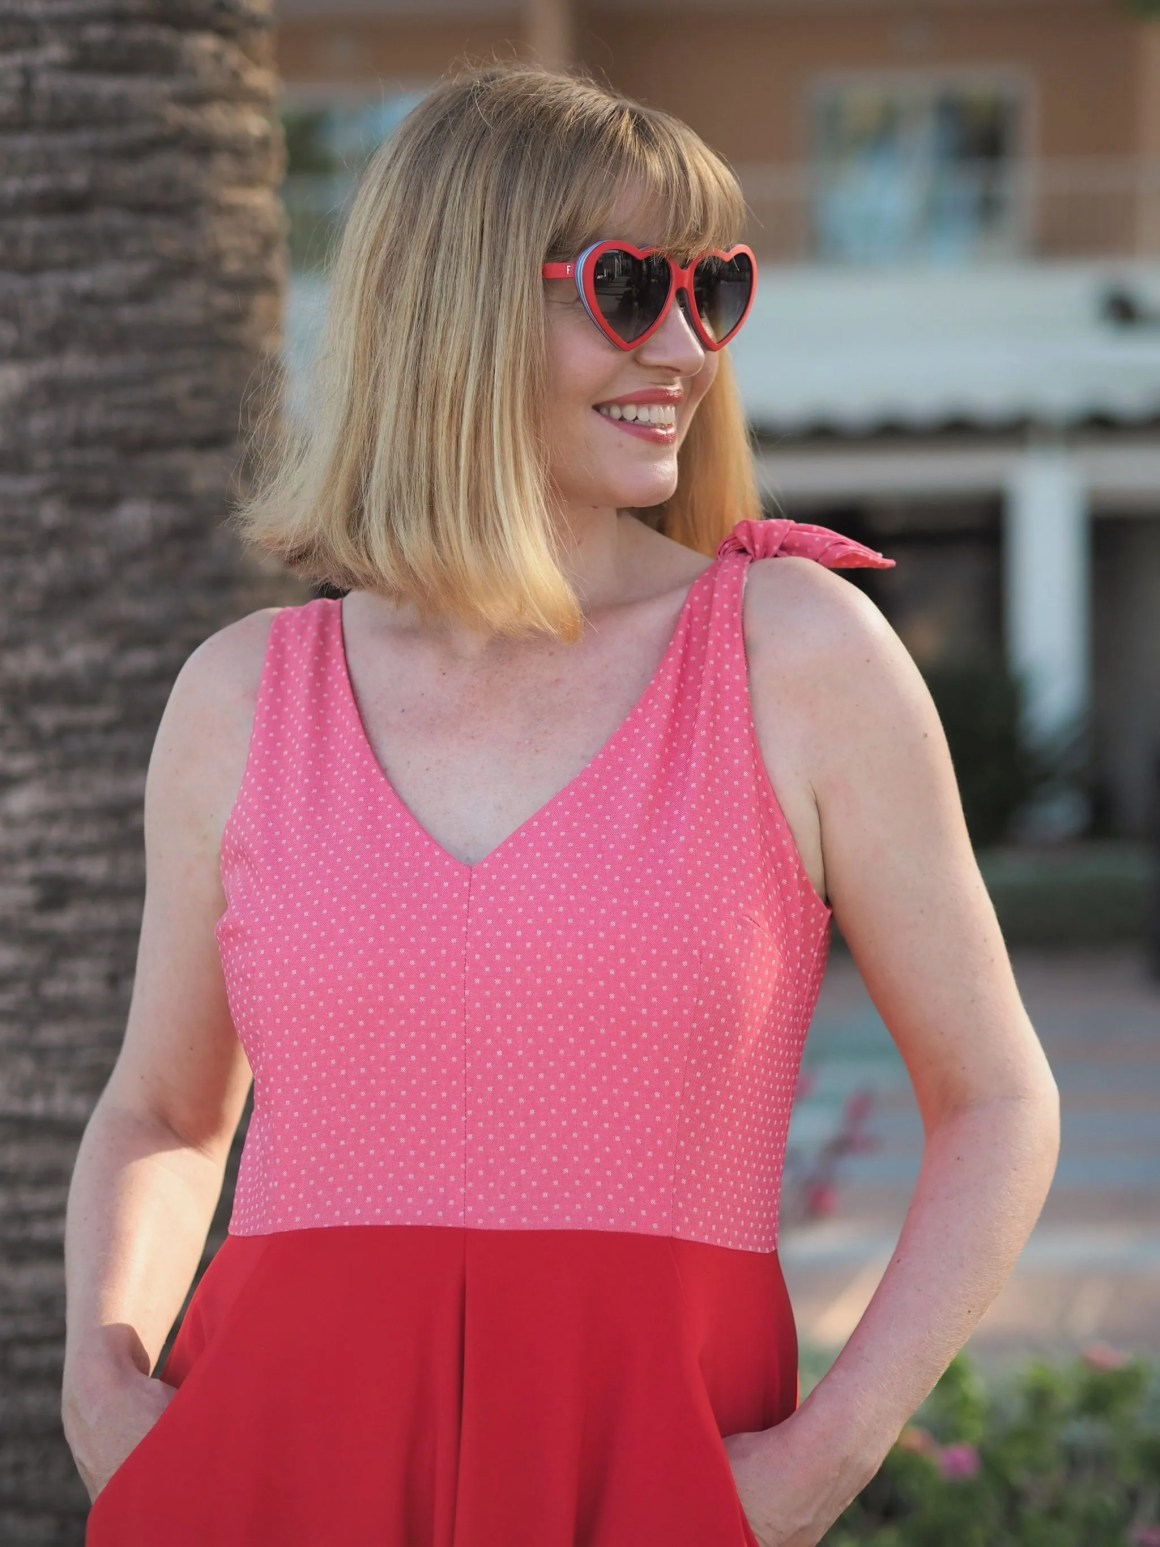 red and pink fifties style dress with red heart sunglasses